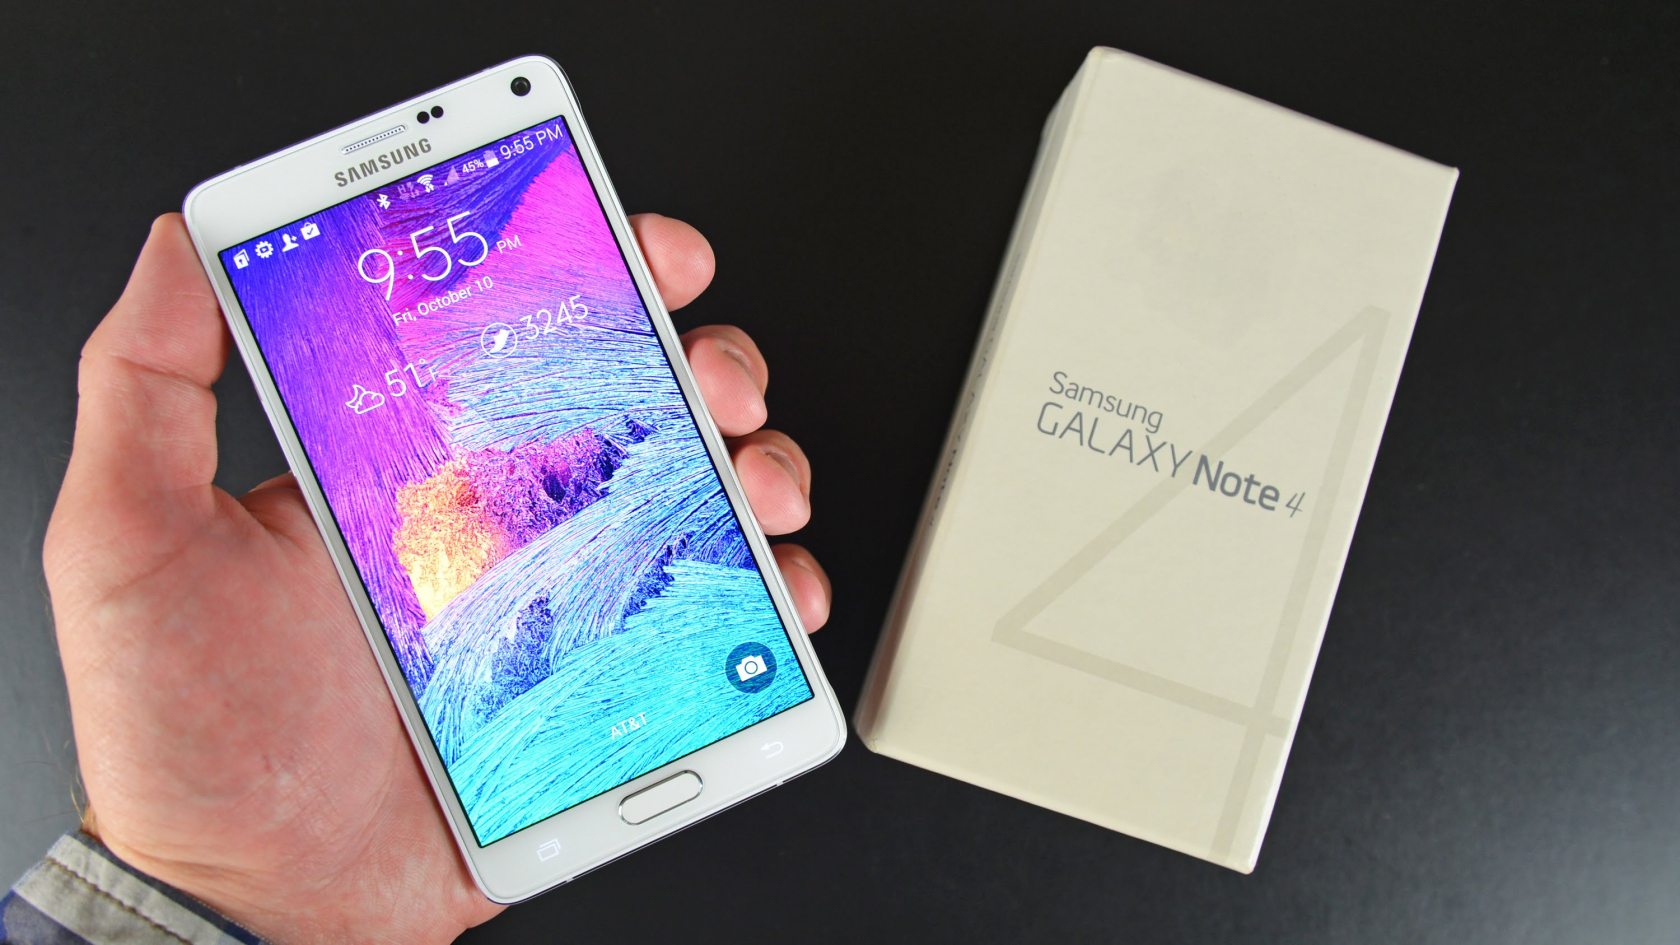 Galaxy Note 4 batteries recalled due to overheating